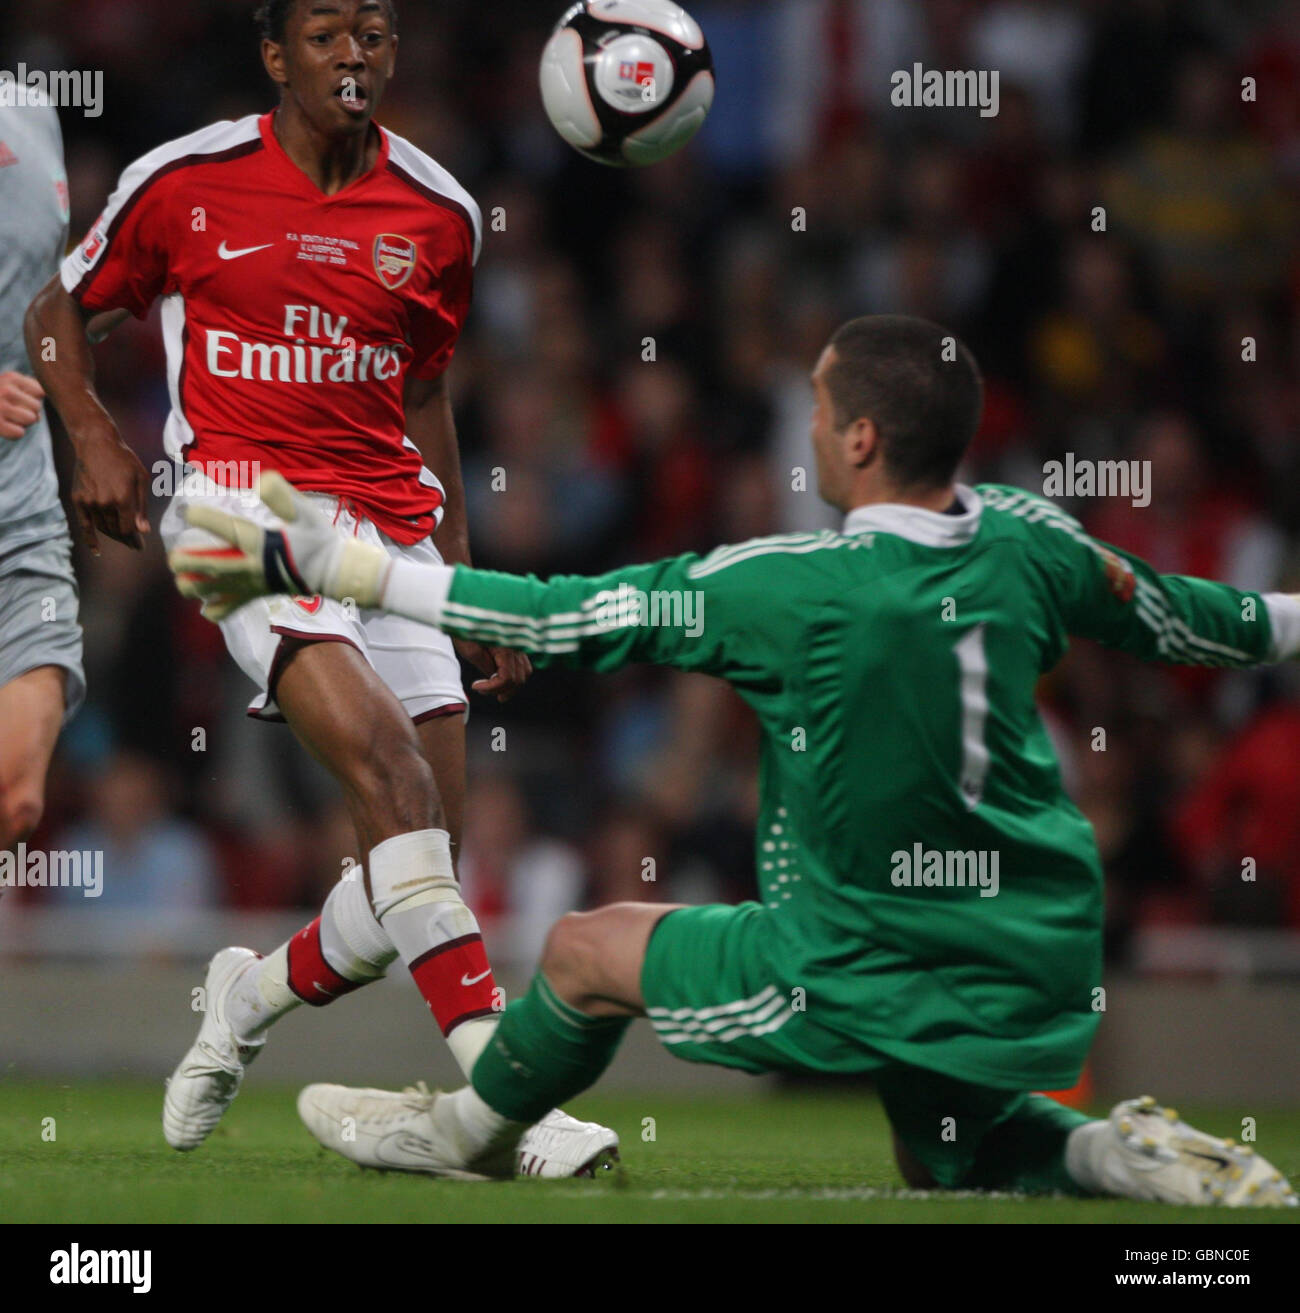 Soccer - FA Youth Cup Final - First Leg - Arsenal v Liverpool - Emirates Stadium Stock Photo